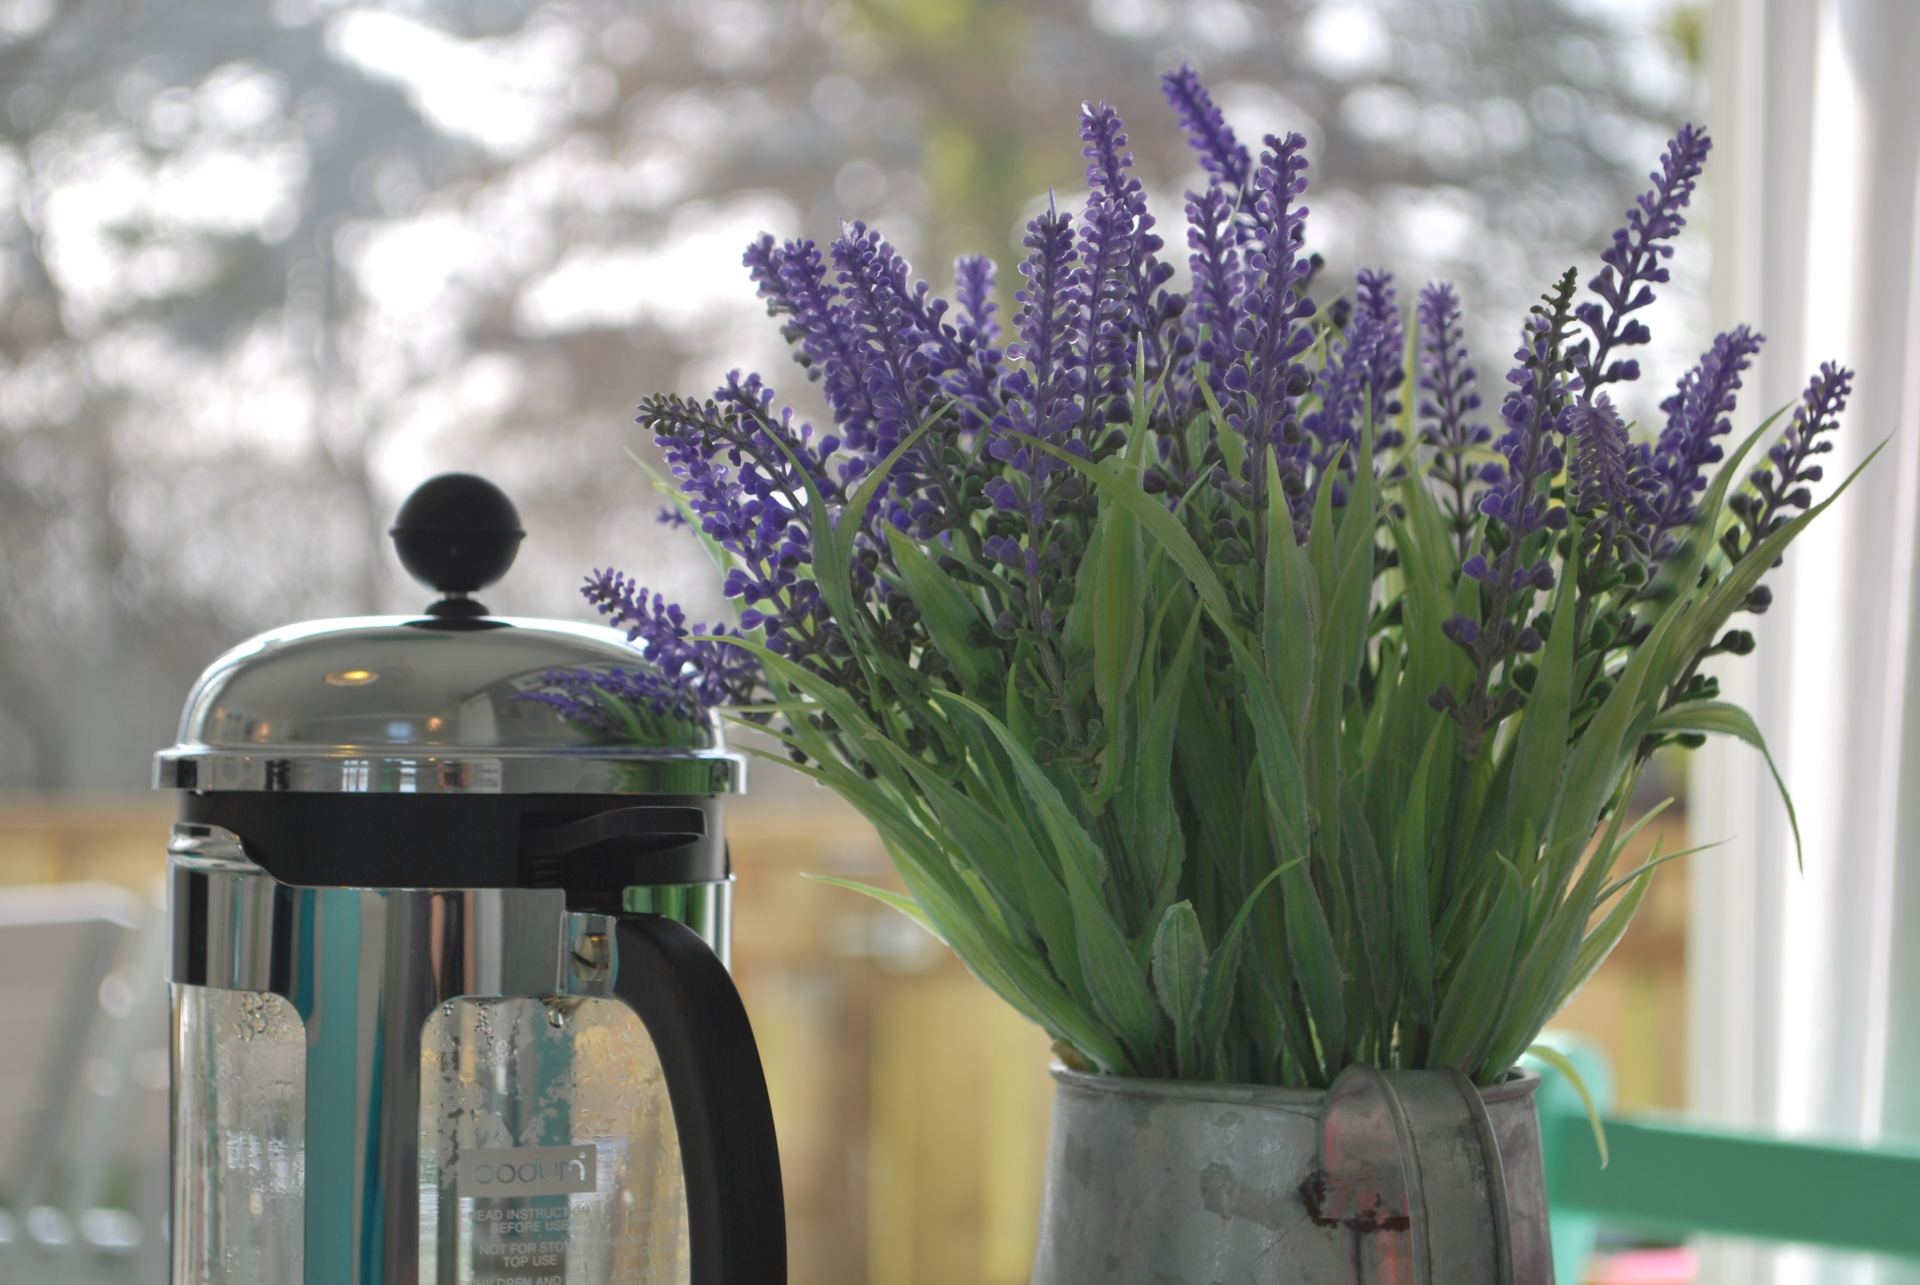 Dunster, luxury, Beach, hut, Salad, Days, cafetiere, flowers, lavender, beach hut, chalet